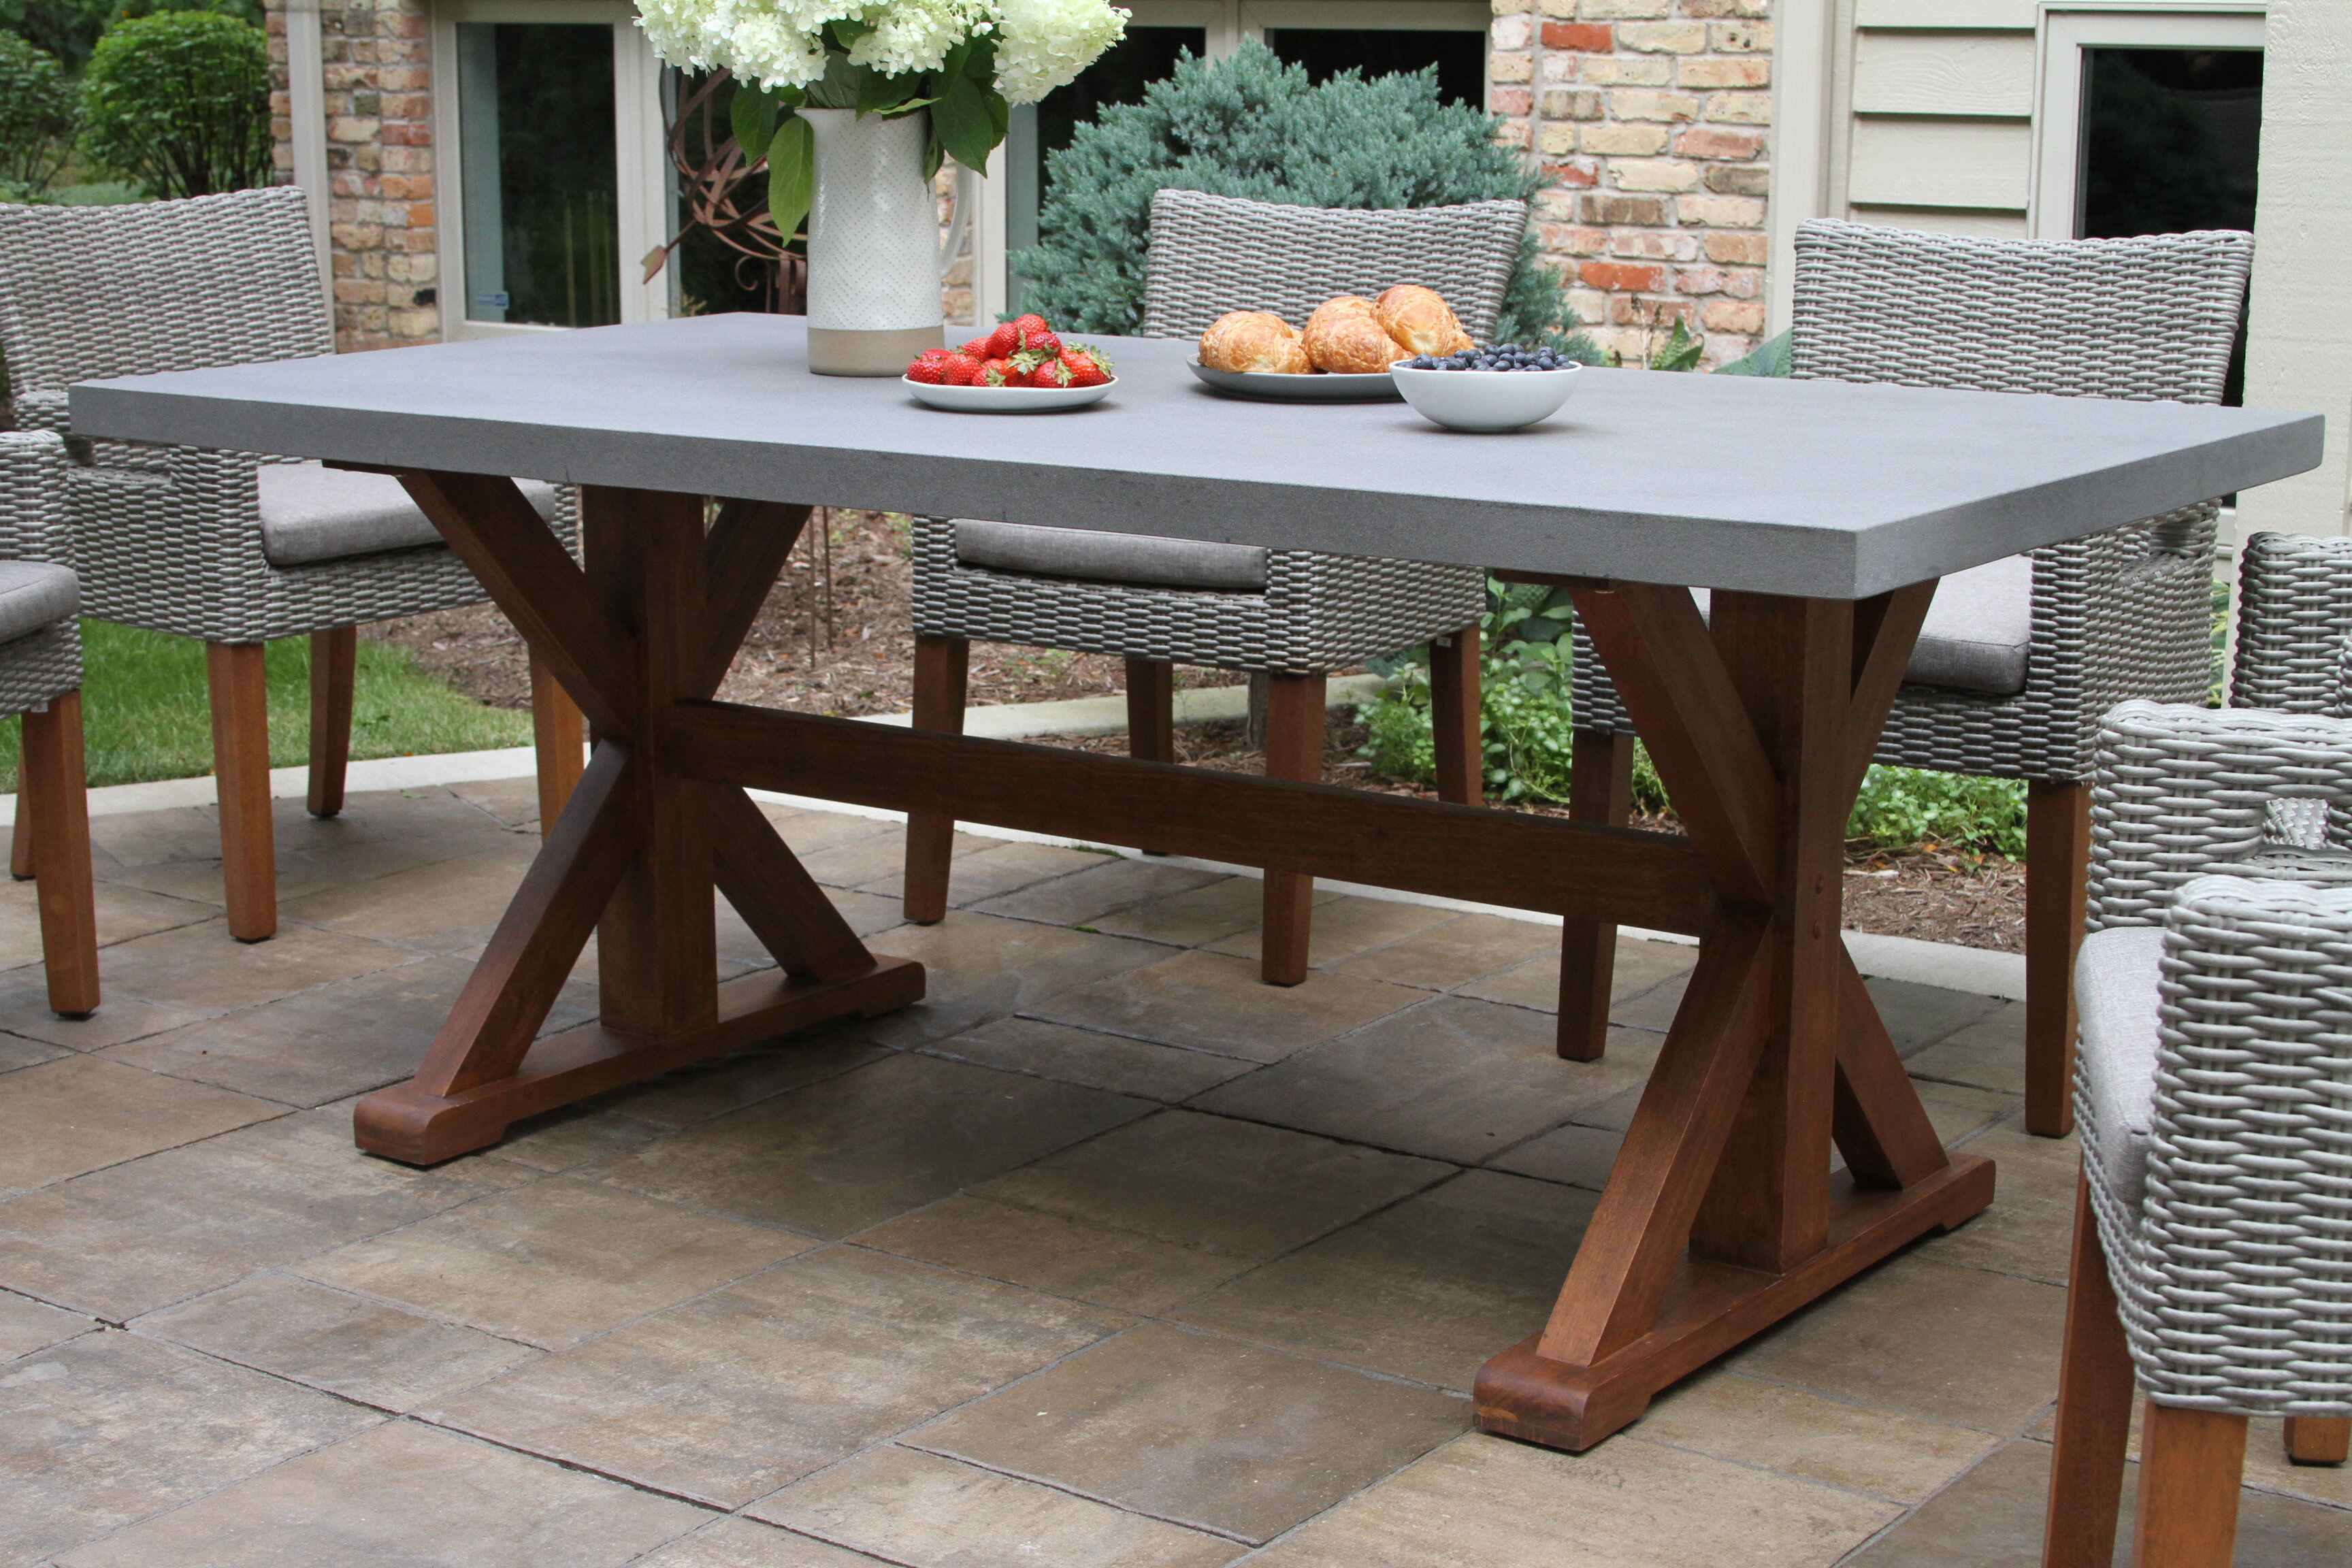 Concrete Wood Dining Table - Dining room ideas